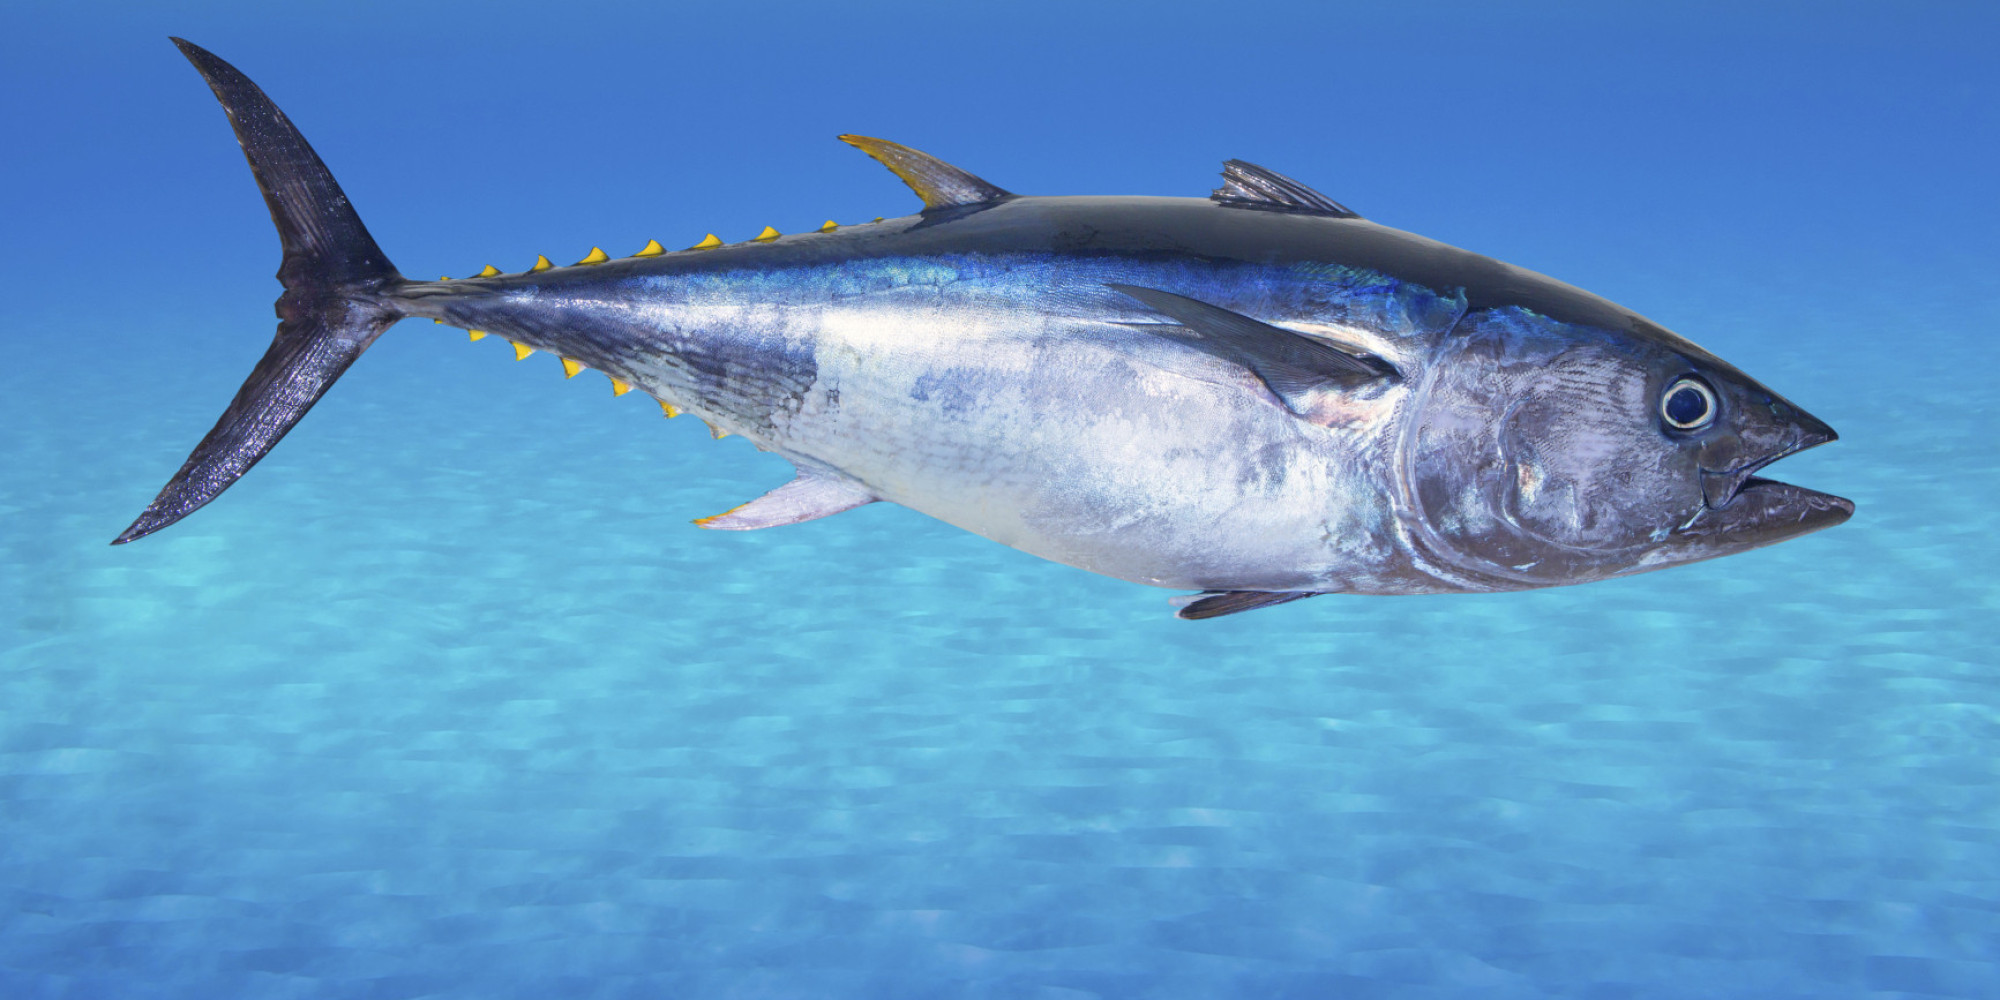 Geol431 vertebrate paleobiology for Tuna fish can